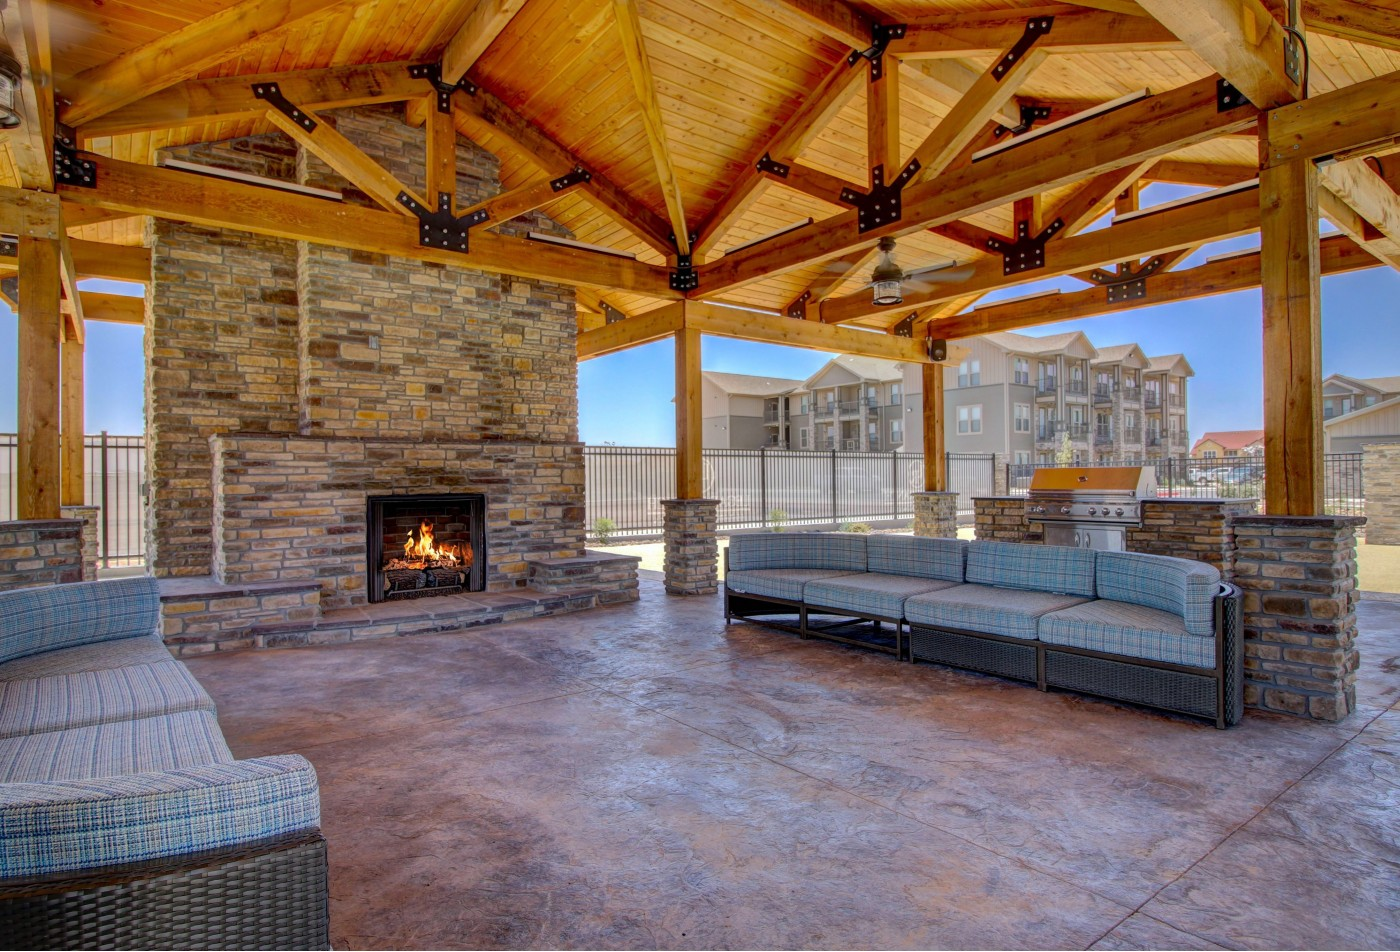 Outdoor Entertainment Space with outdoor kitchen